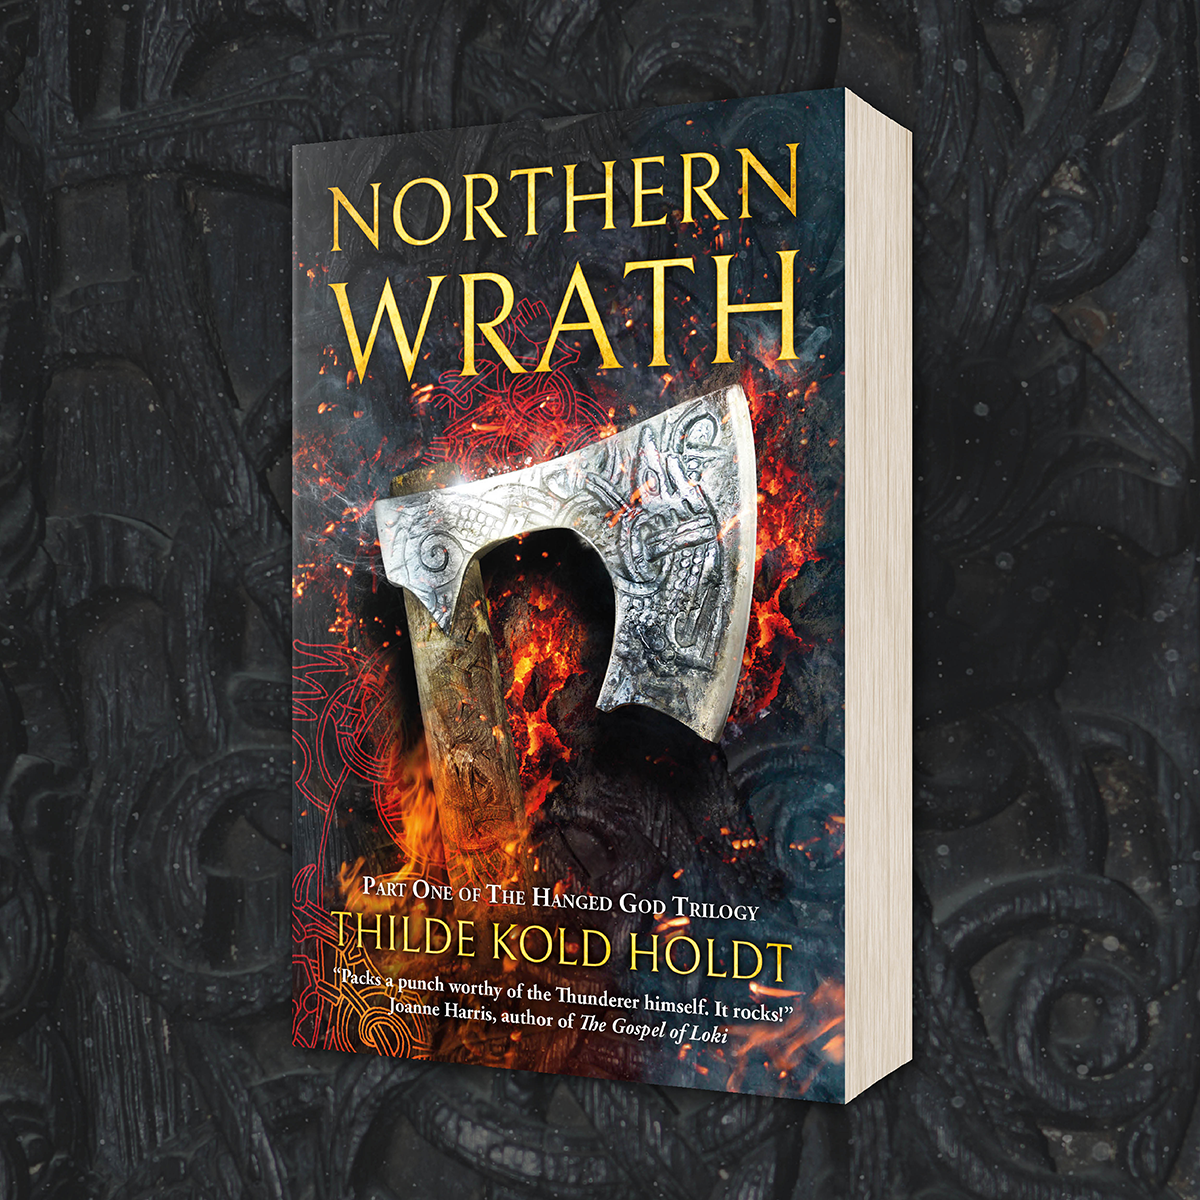 Northern Wrath